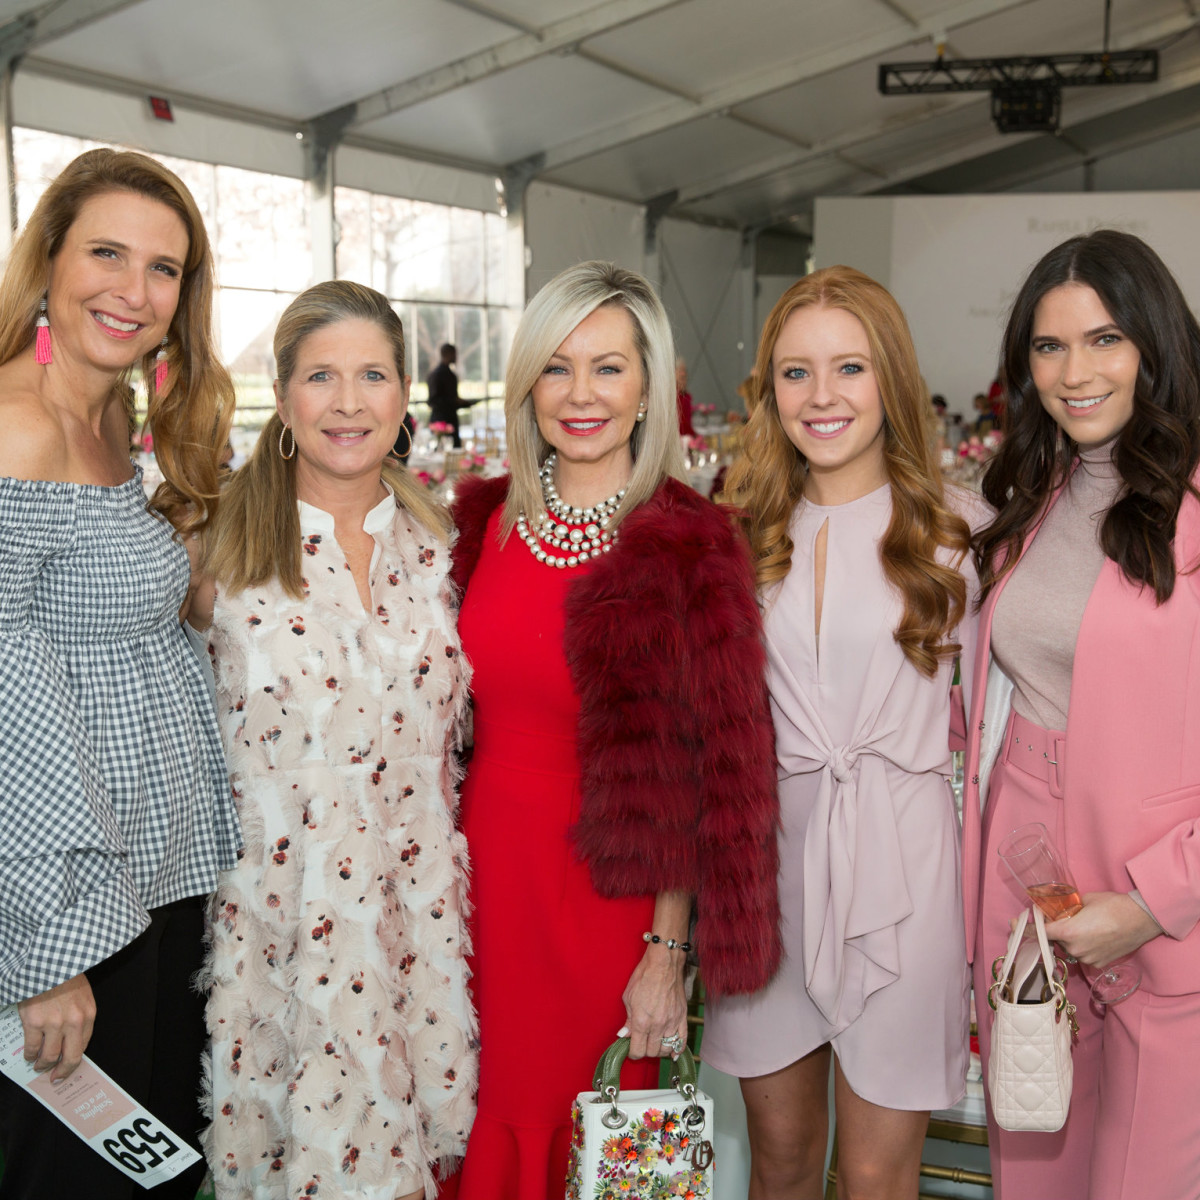 bf63437a3 Philanthropic Dallasites show a lot of heart at fashionable luncheon ...